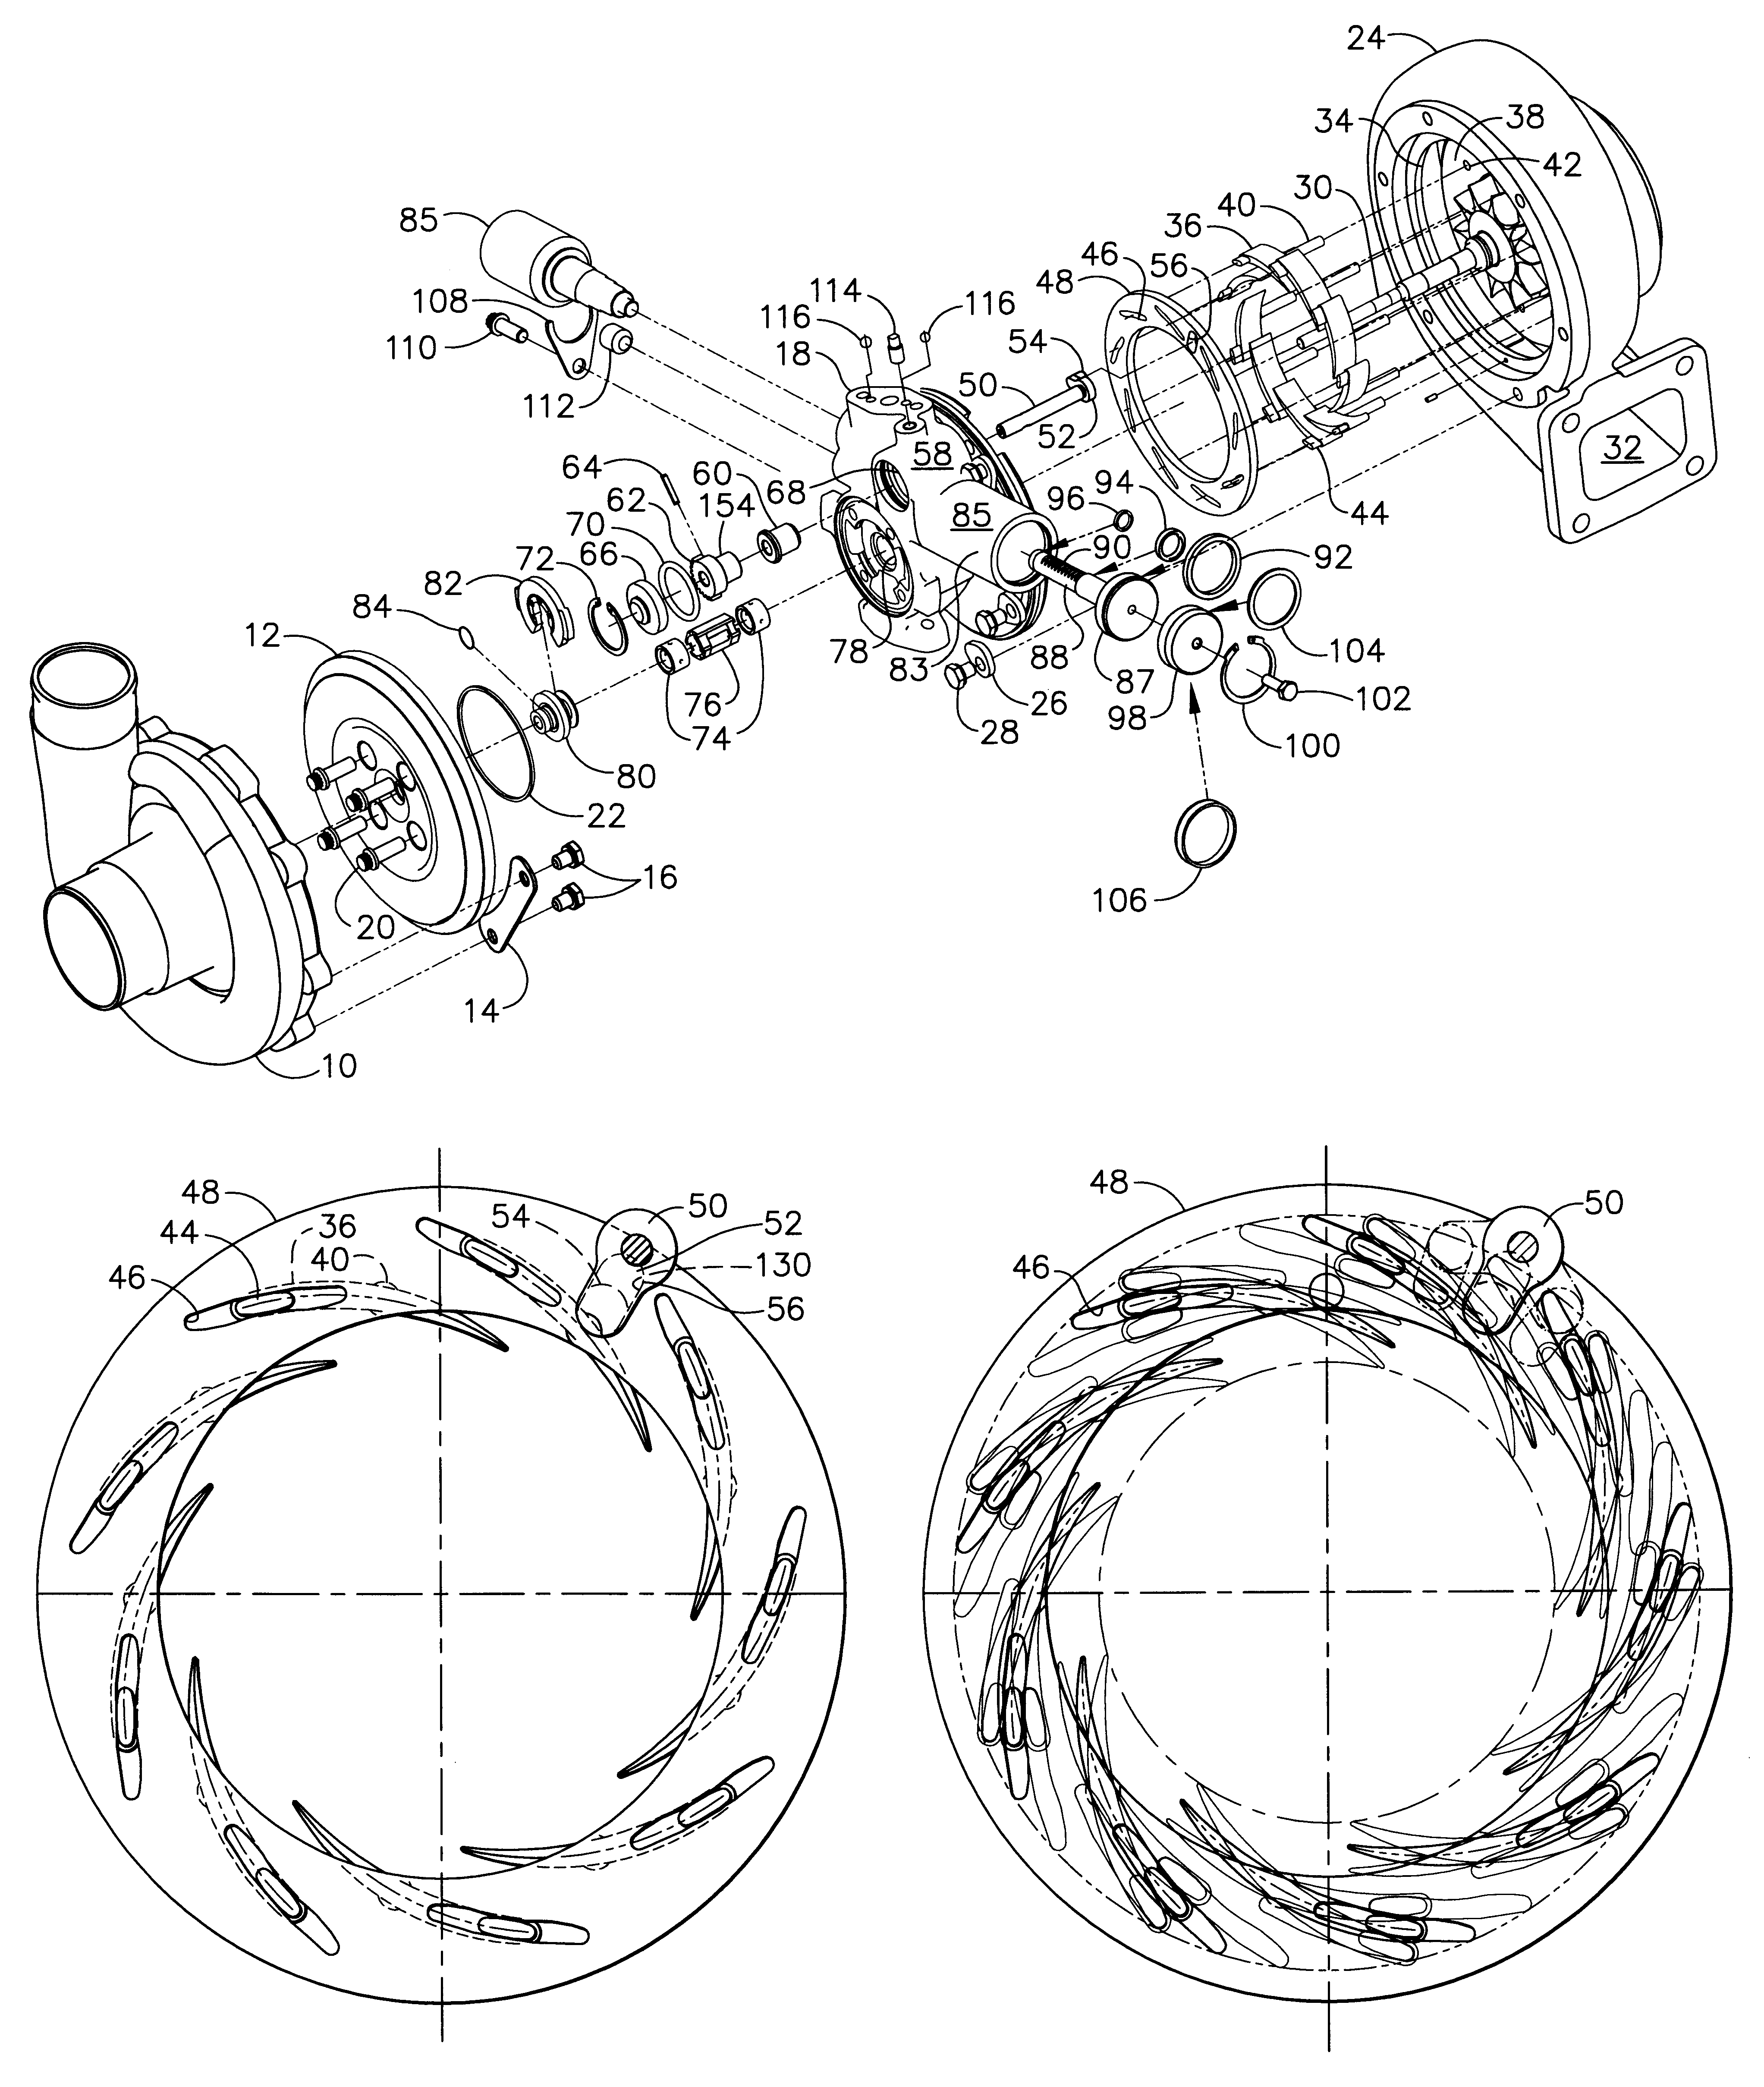 patent us6269642 - variable geometry turbocharger